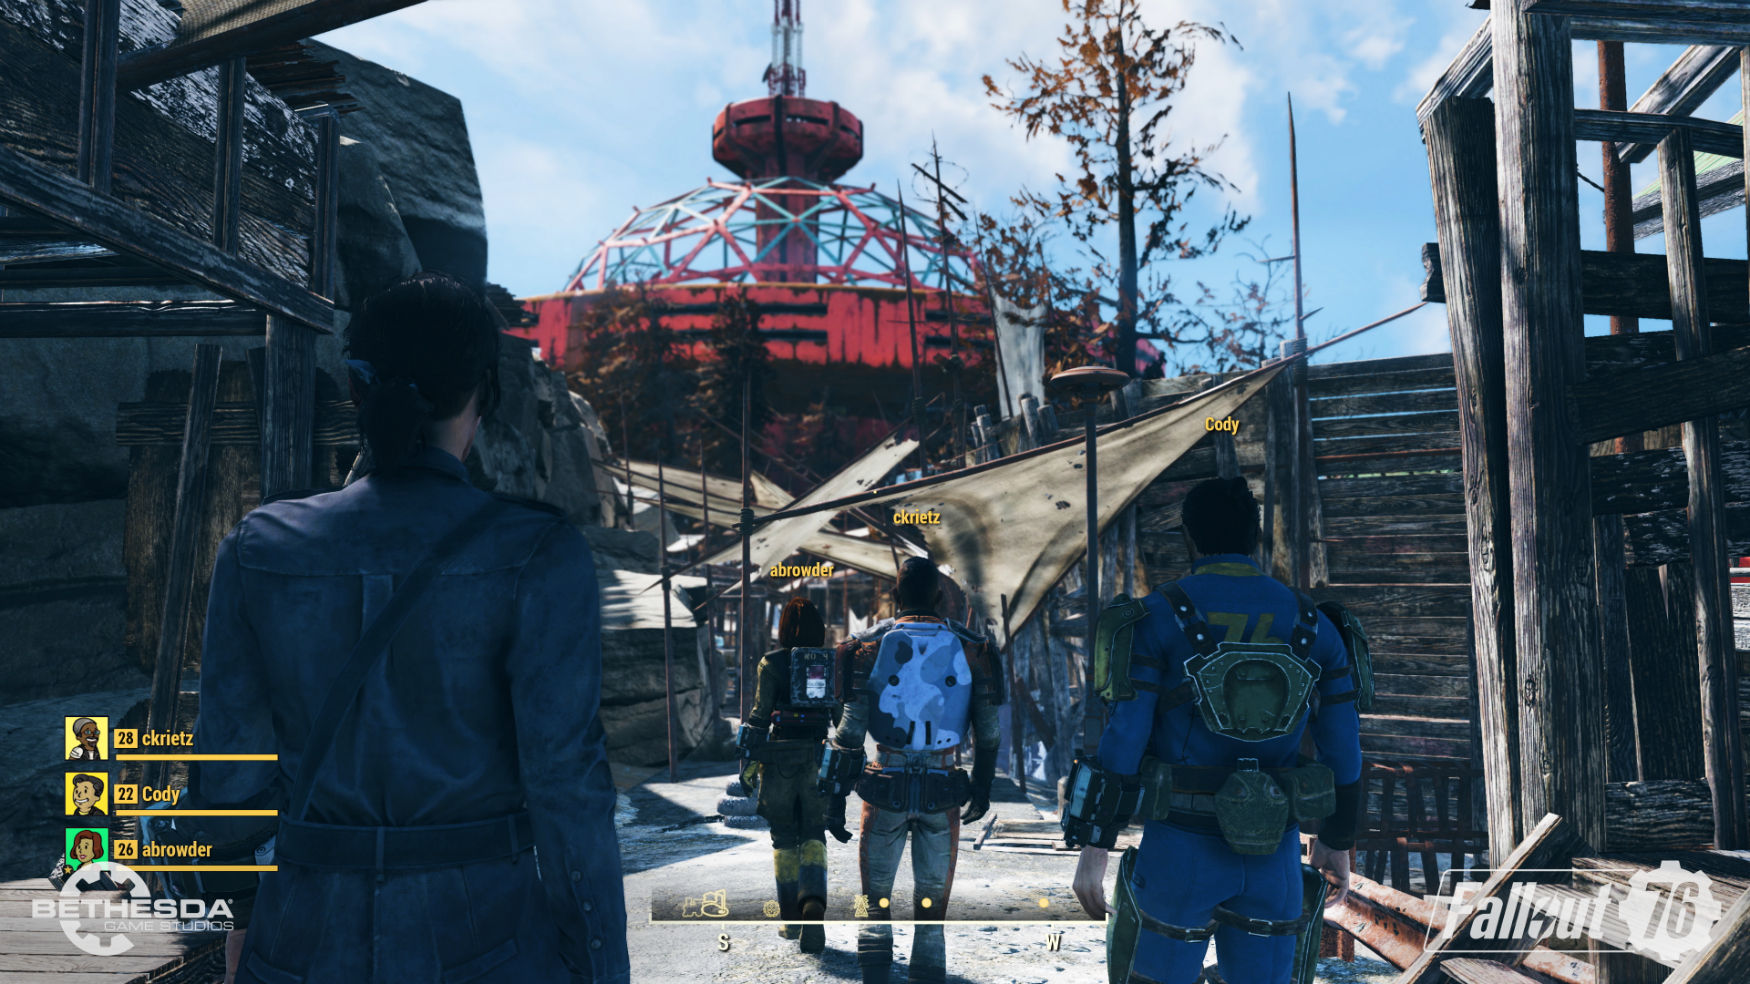 Fallout 76 and the thrill of 'stranger danger' | GamesIndustry biz